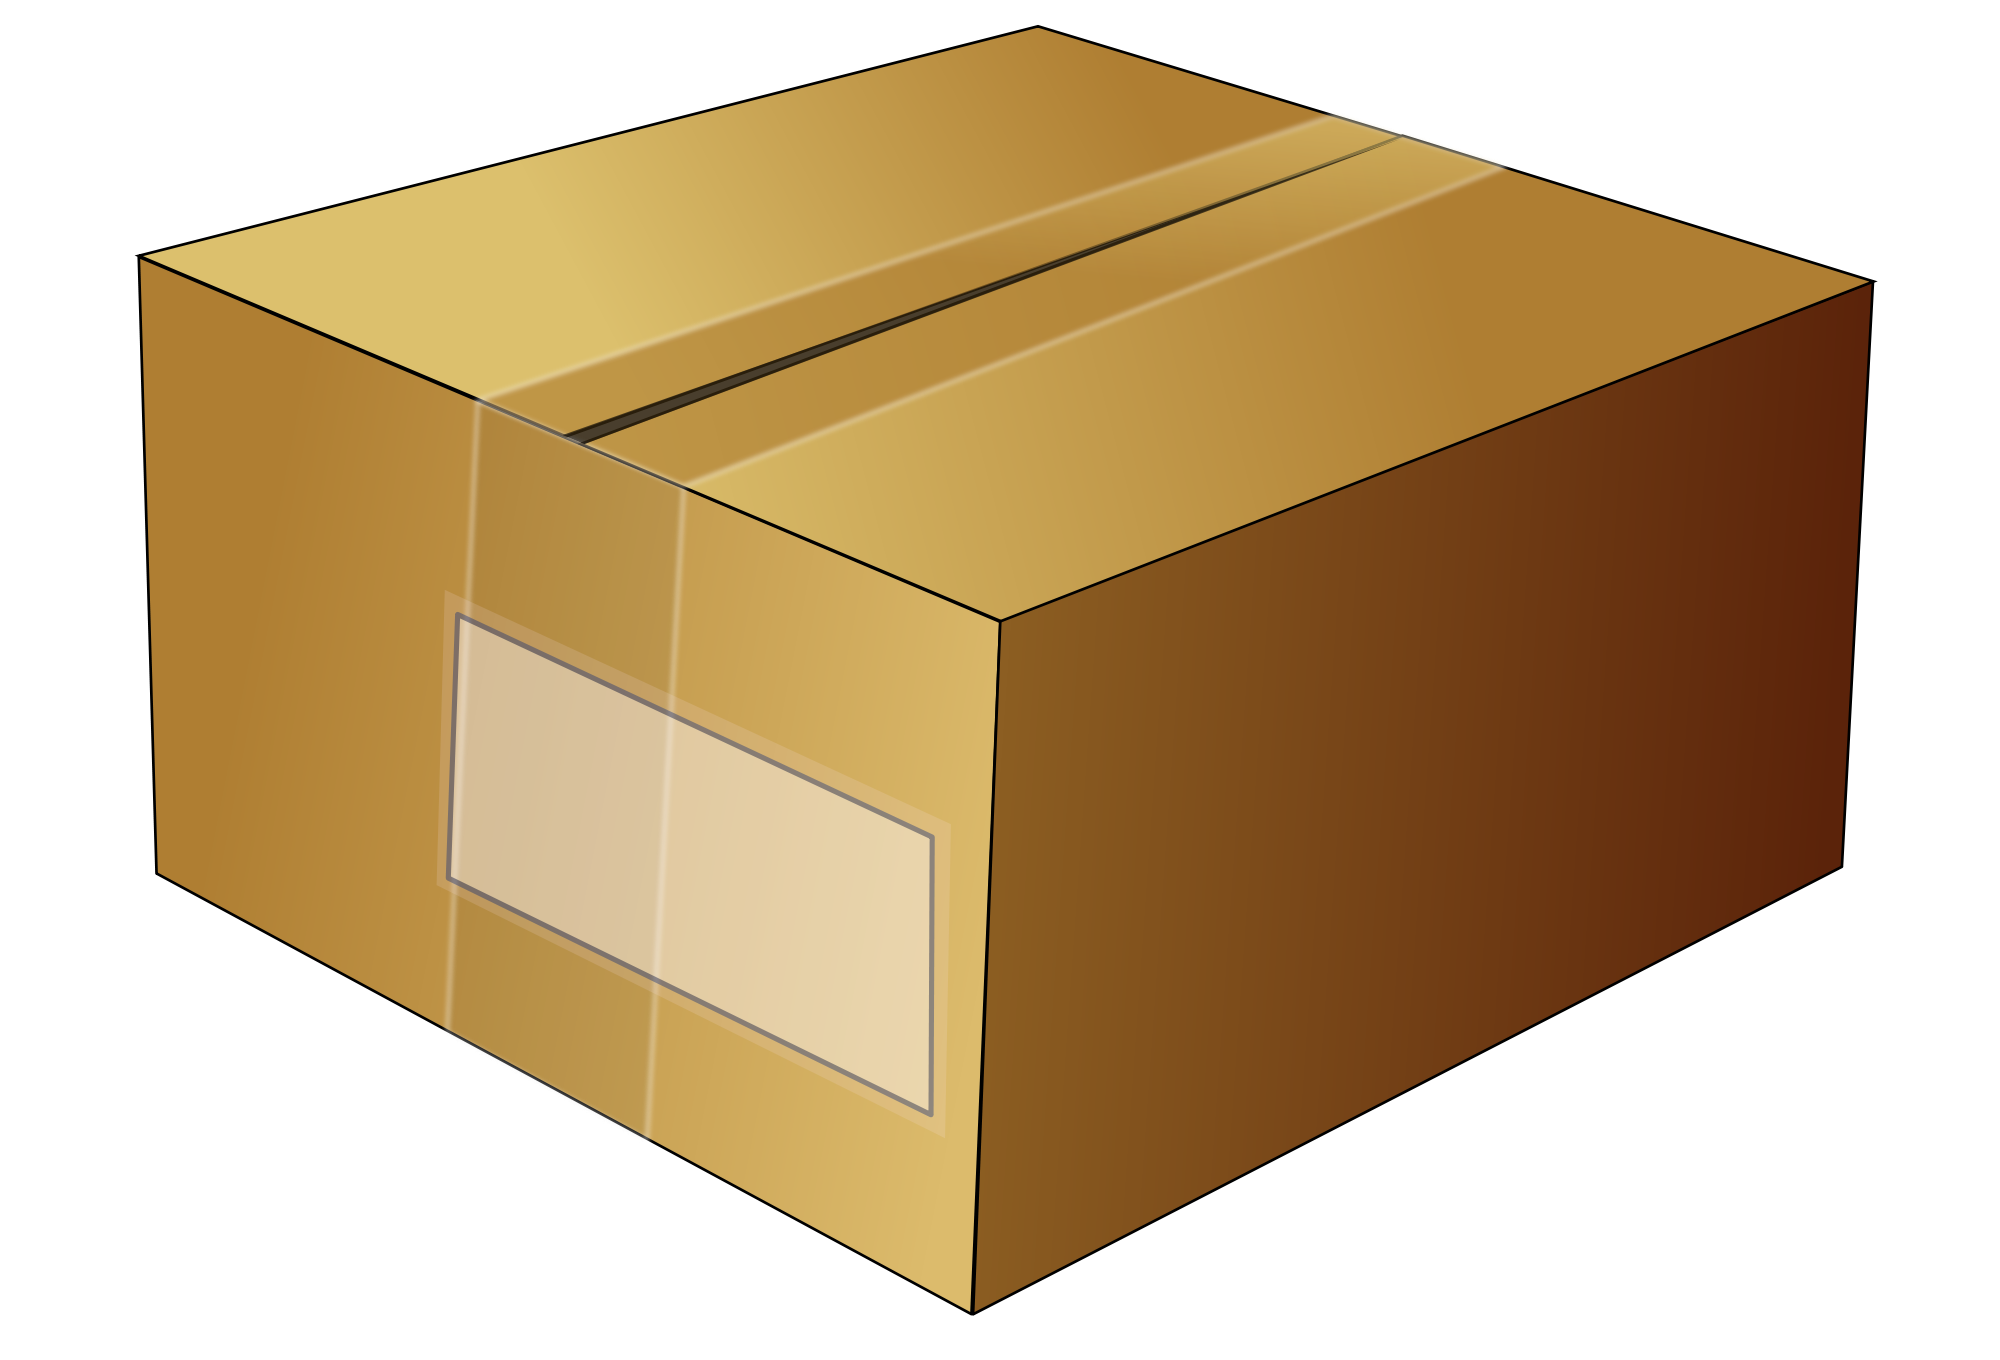 Svg box. File simple cardboard wikimedia